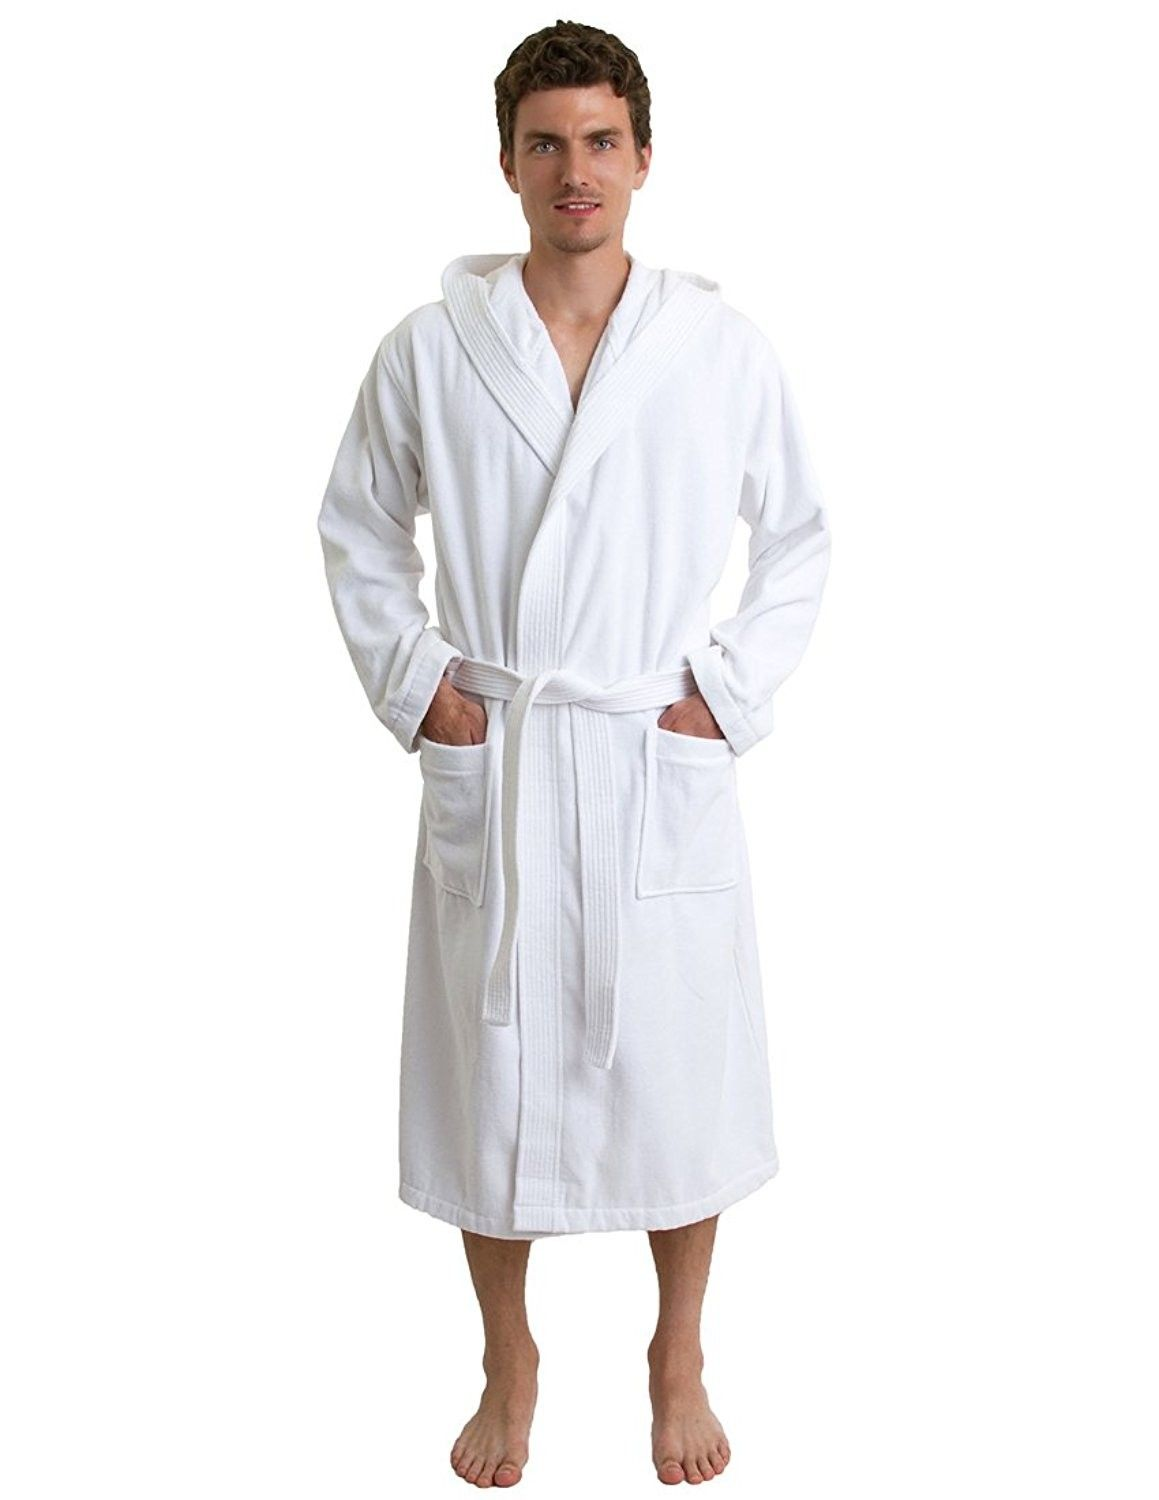 Men s Robe- Hooded Terry Velour Cotton Bathrobe Made in Turkey - White -  CT11KJIDP6B 8387ce924